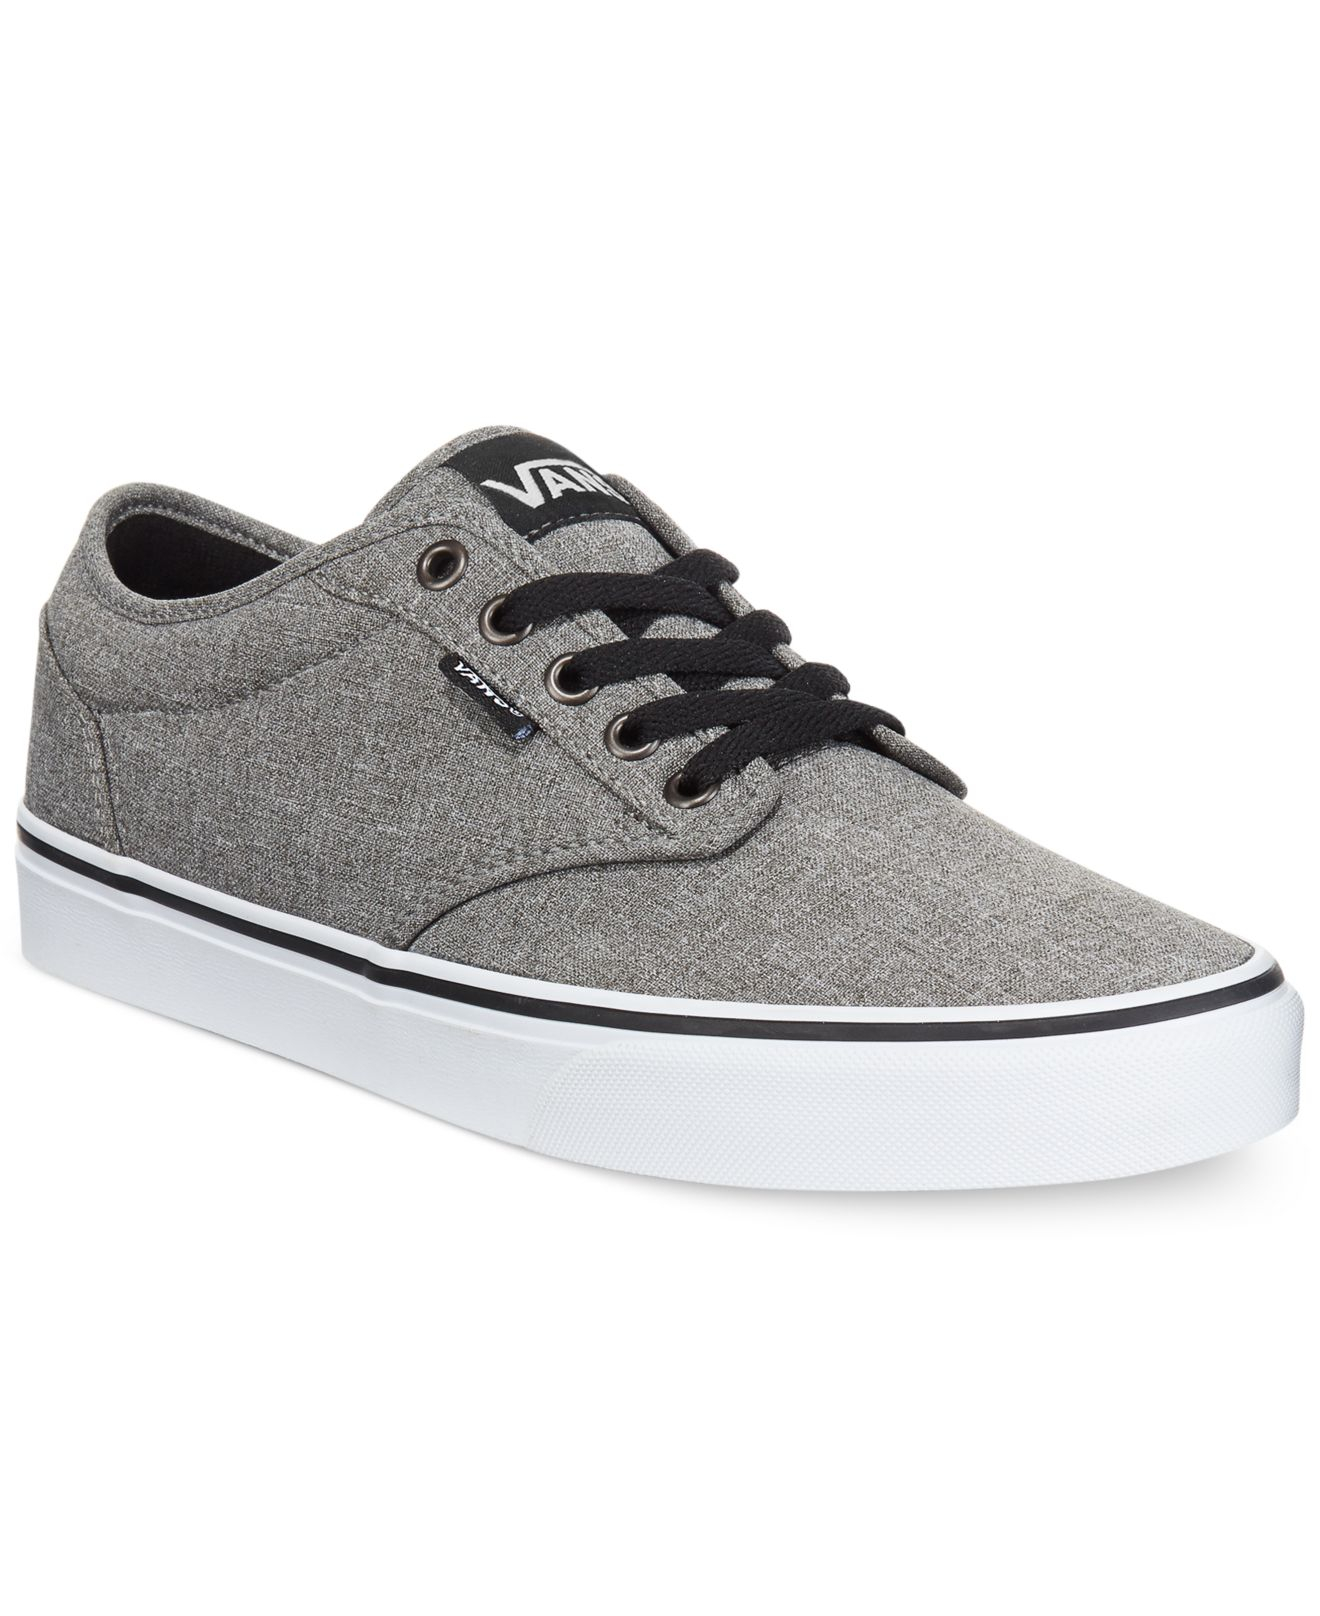 Vans Canvas Men's Atwood Heathered Sneakers in Gray for Men - Lyst